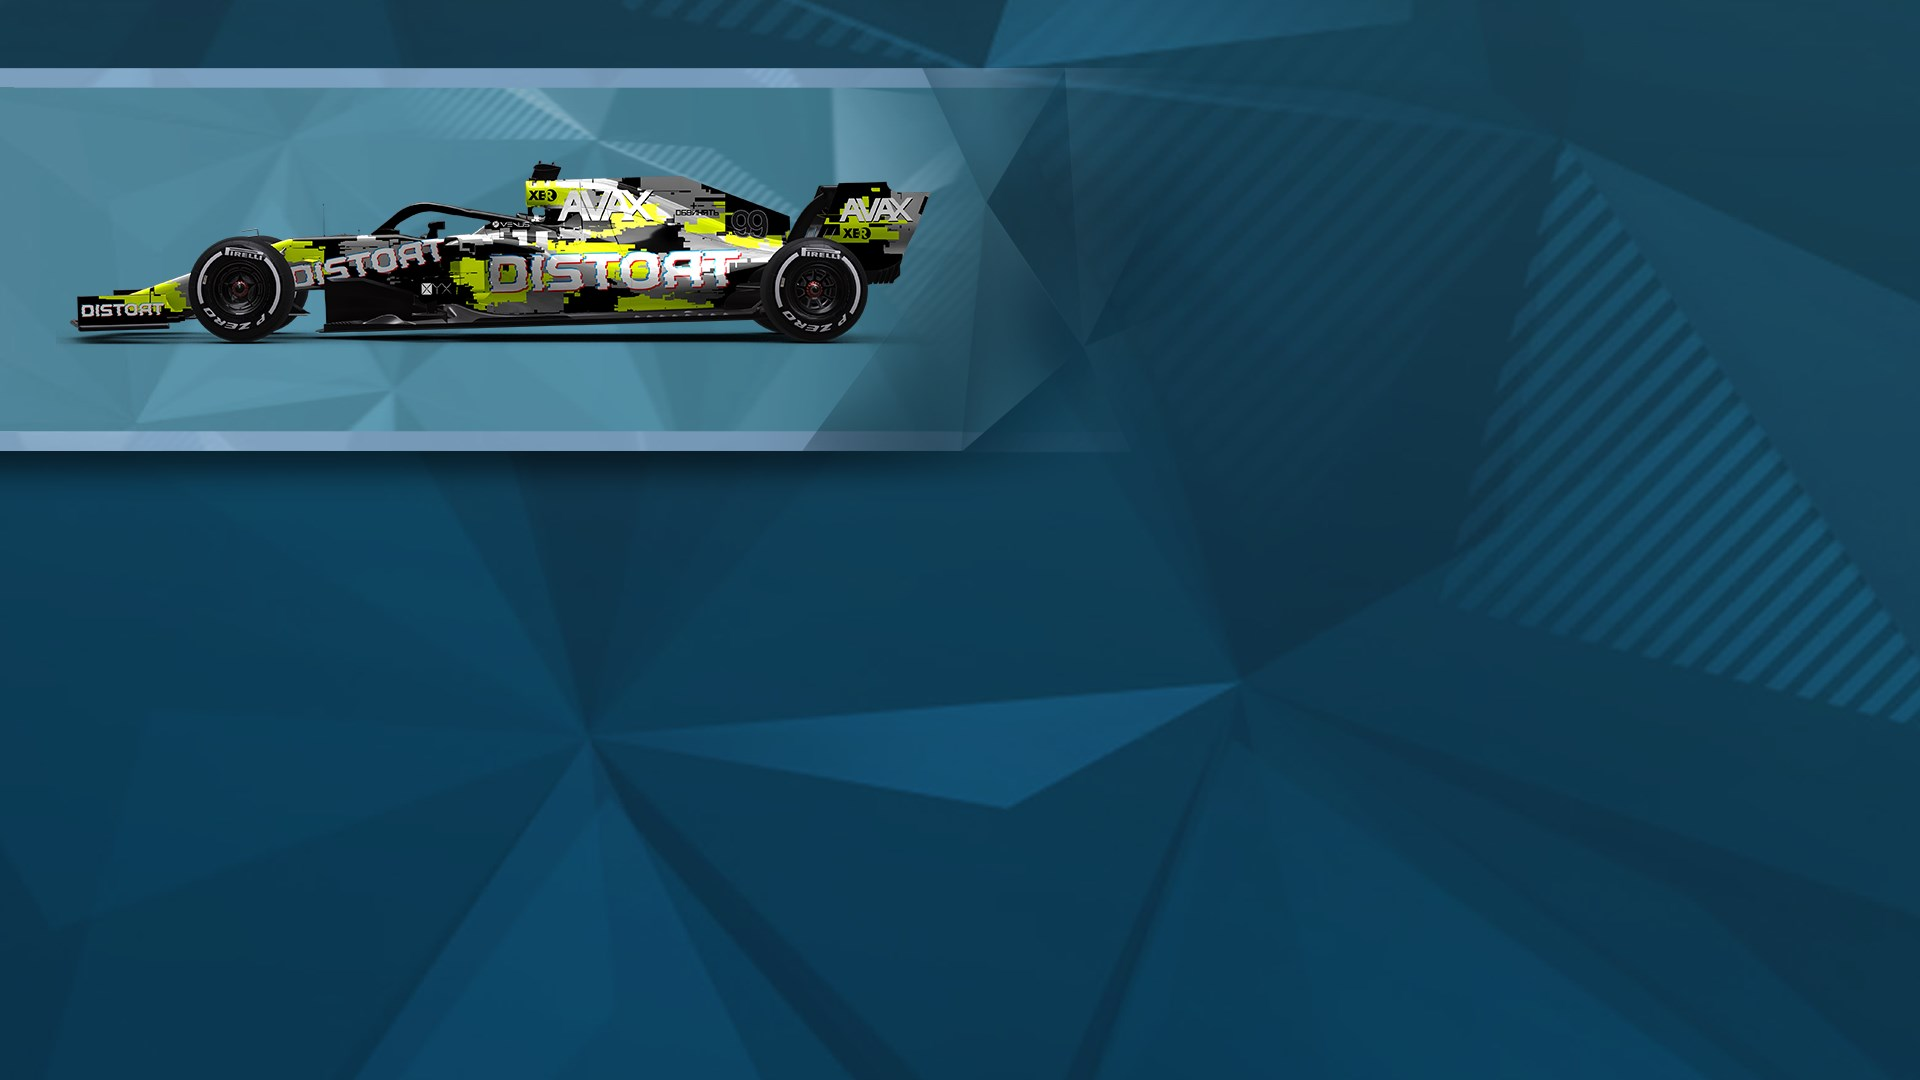 F1® 2019 WS: Car Livery 'DISTORT - Interference'